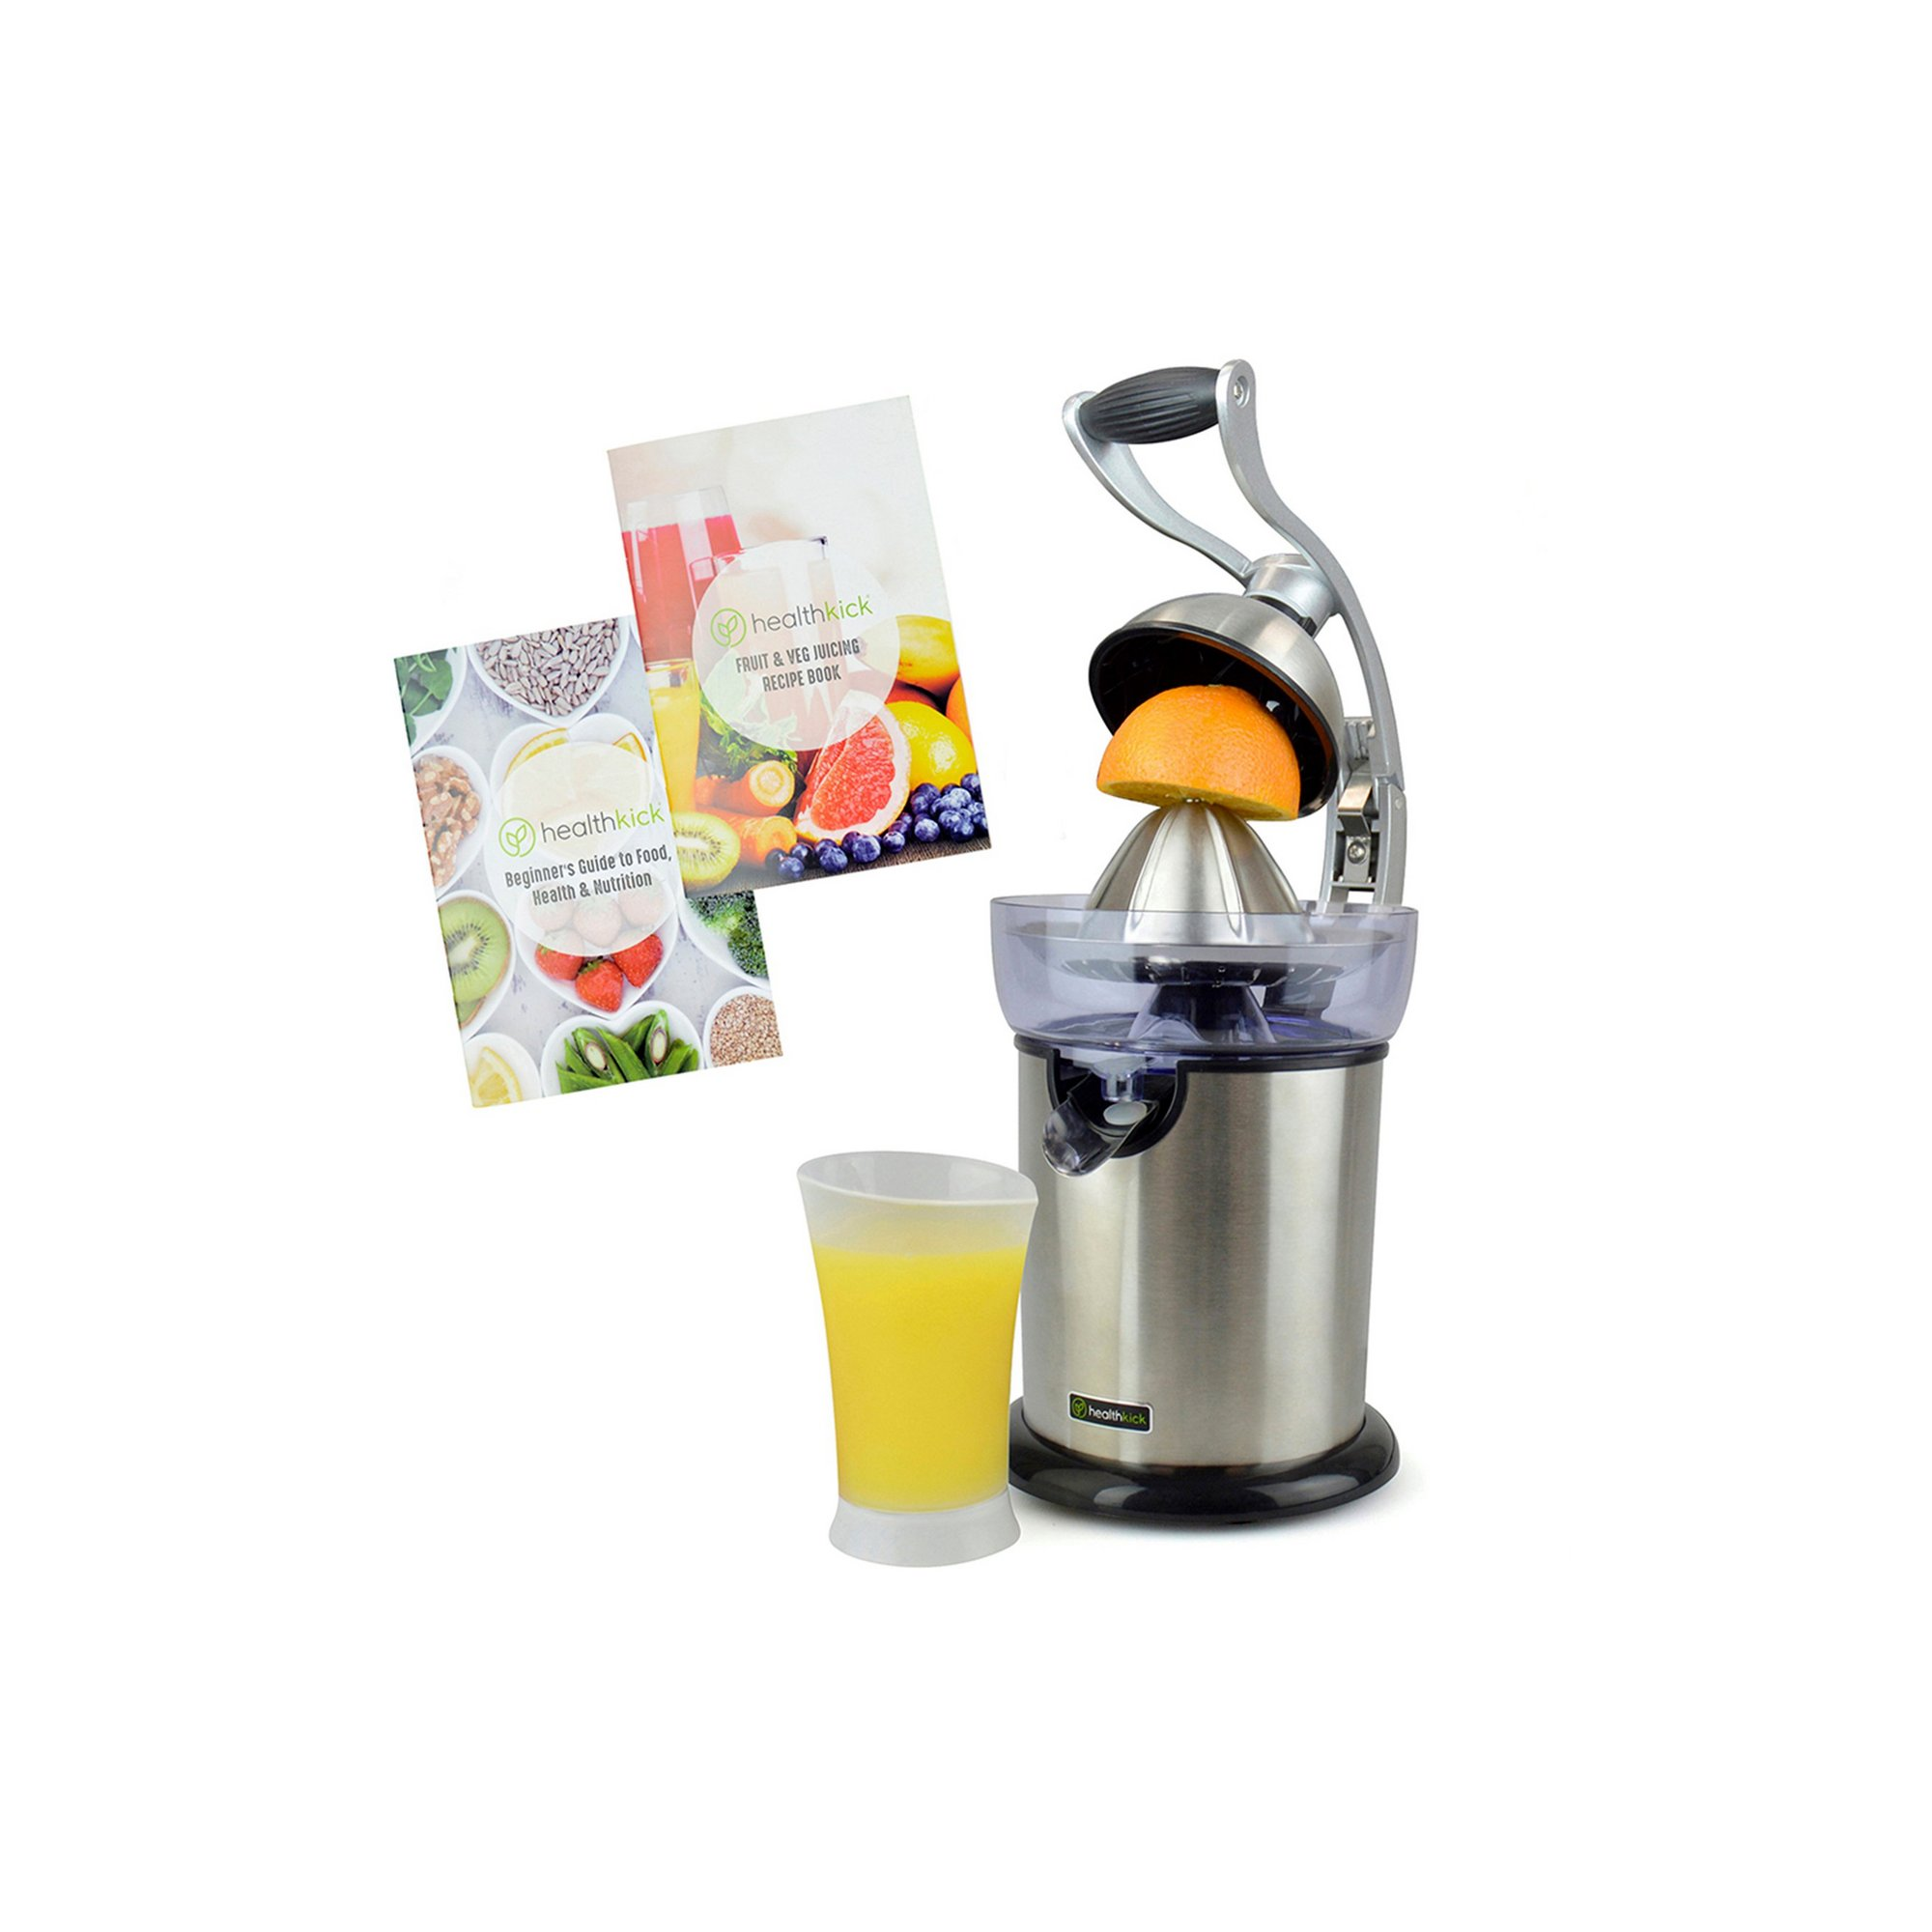 Image of Health Kick 130W Citrus Fruit Juicing Press